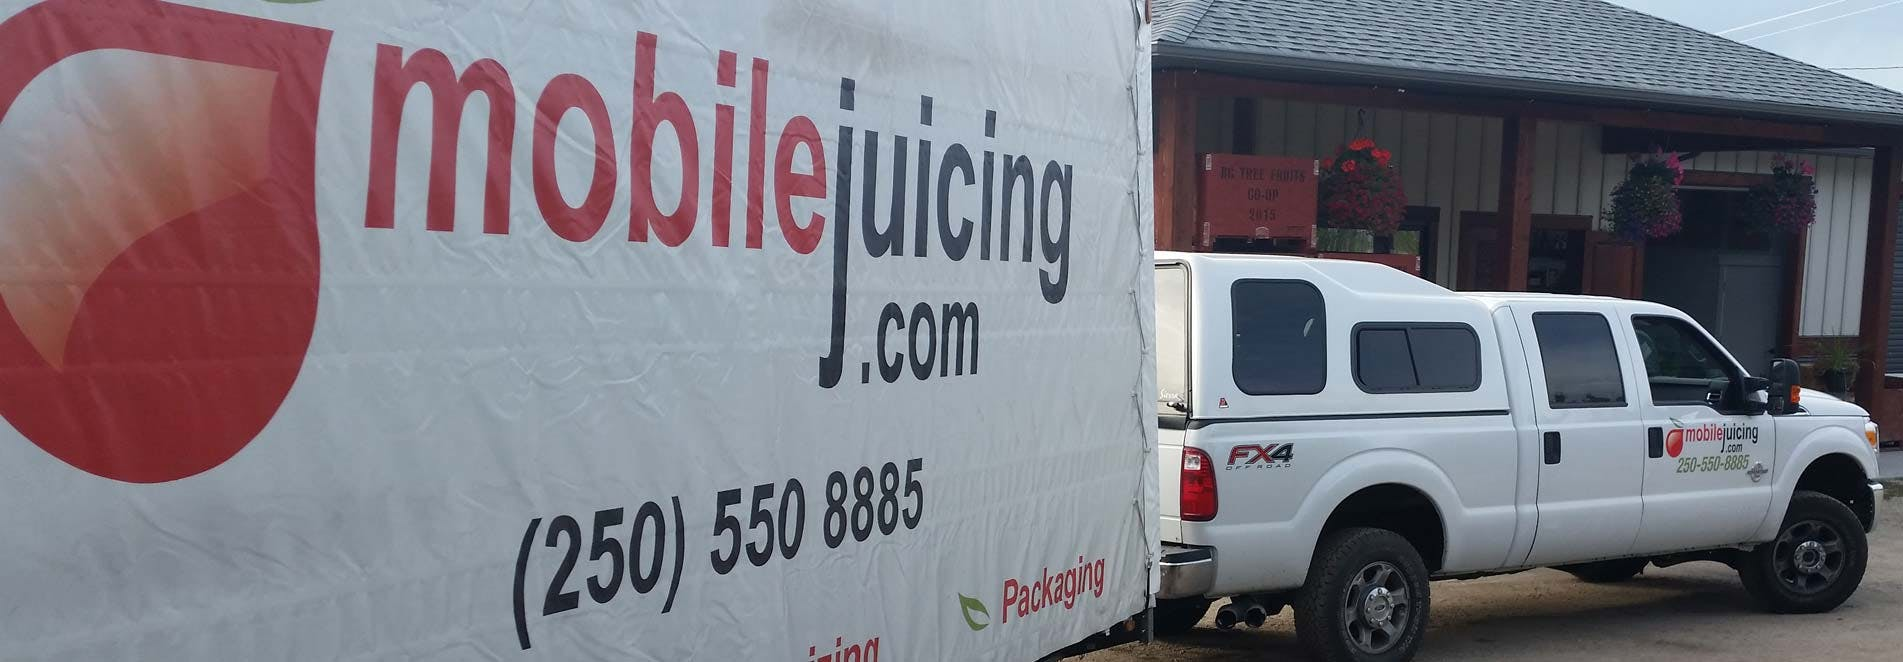 Complete Unit - Mobile Juicing Trailer KML - sold by Juicing Systems